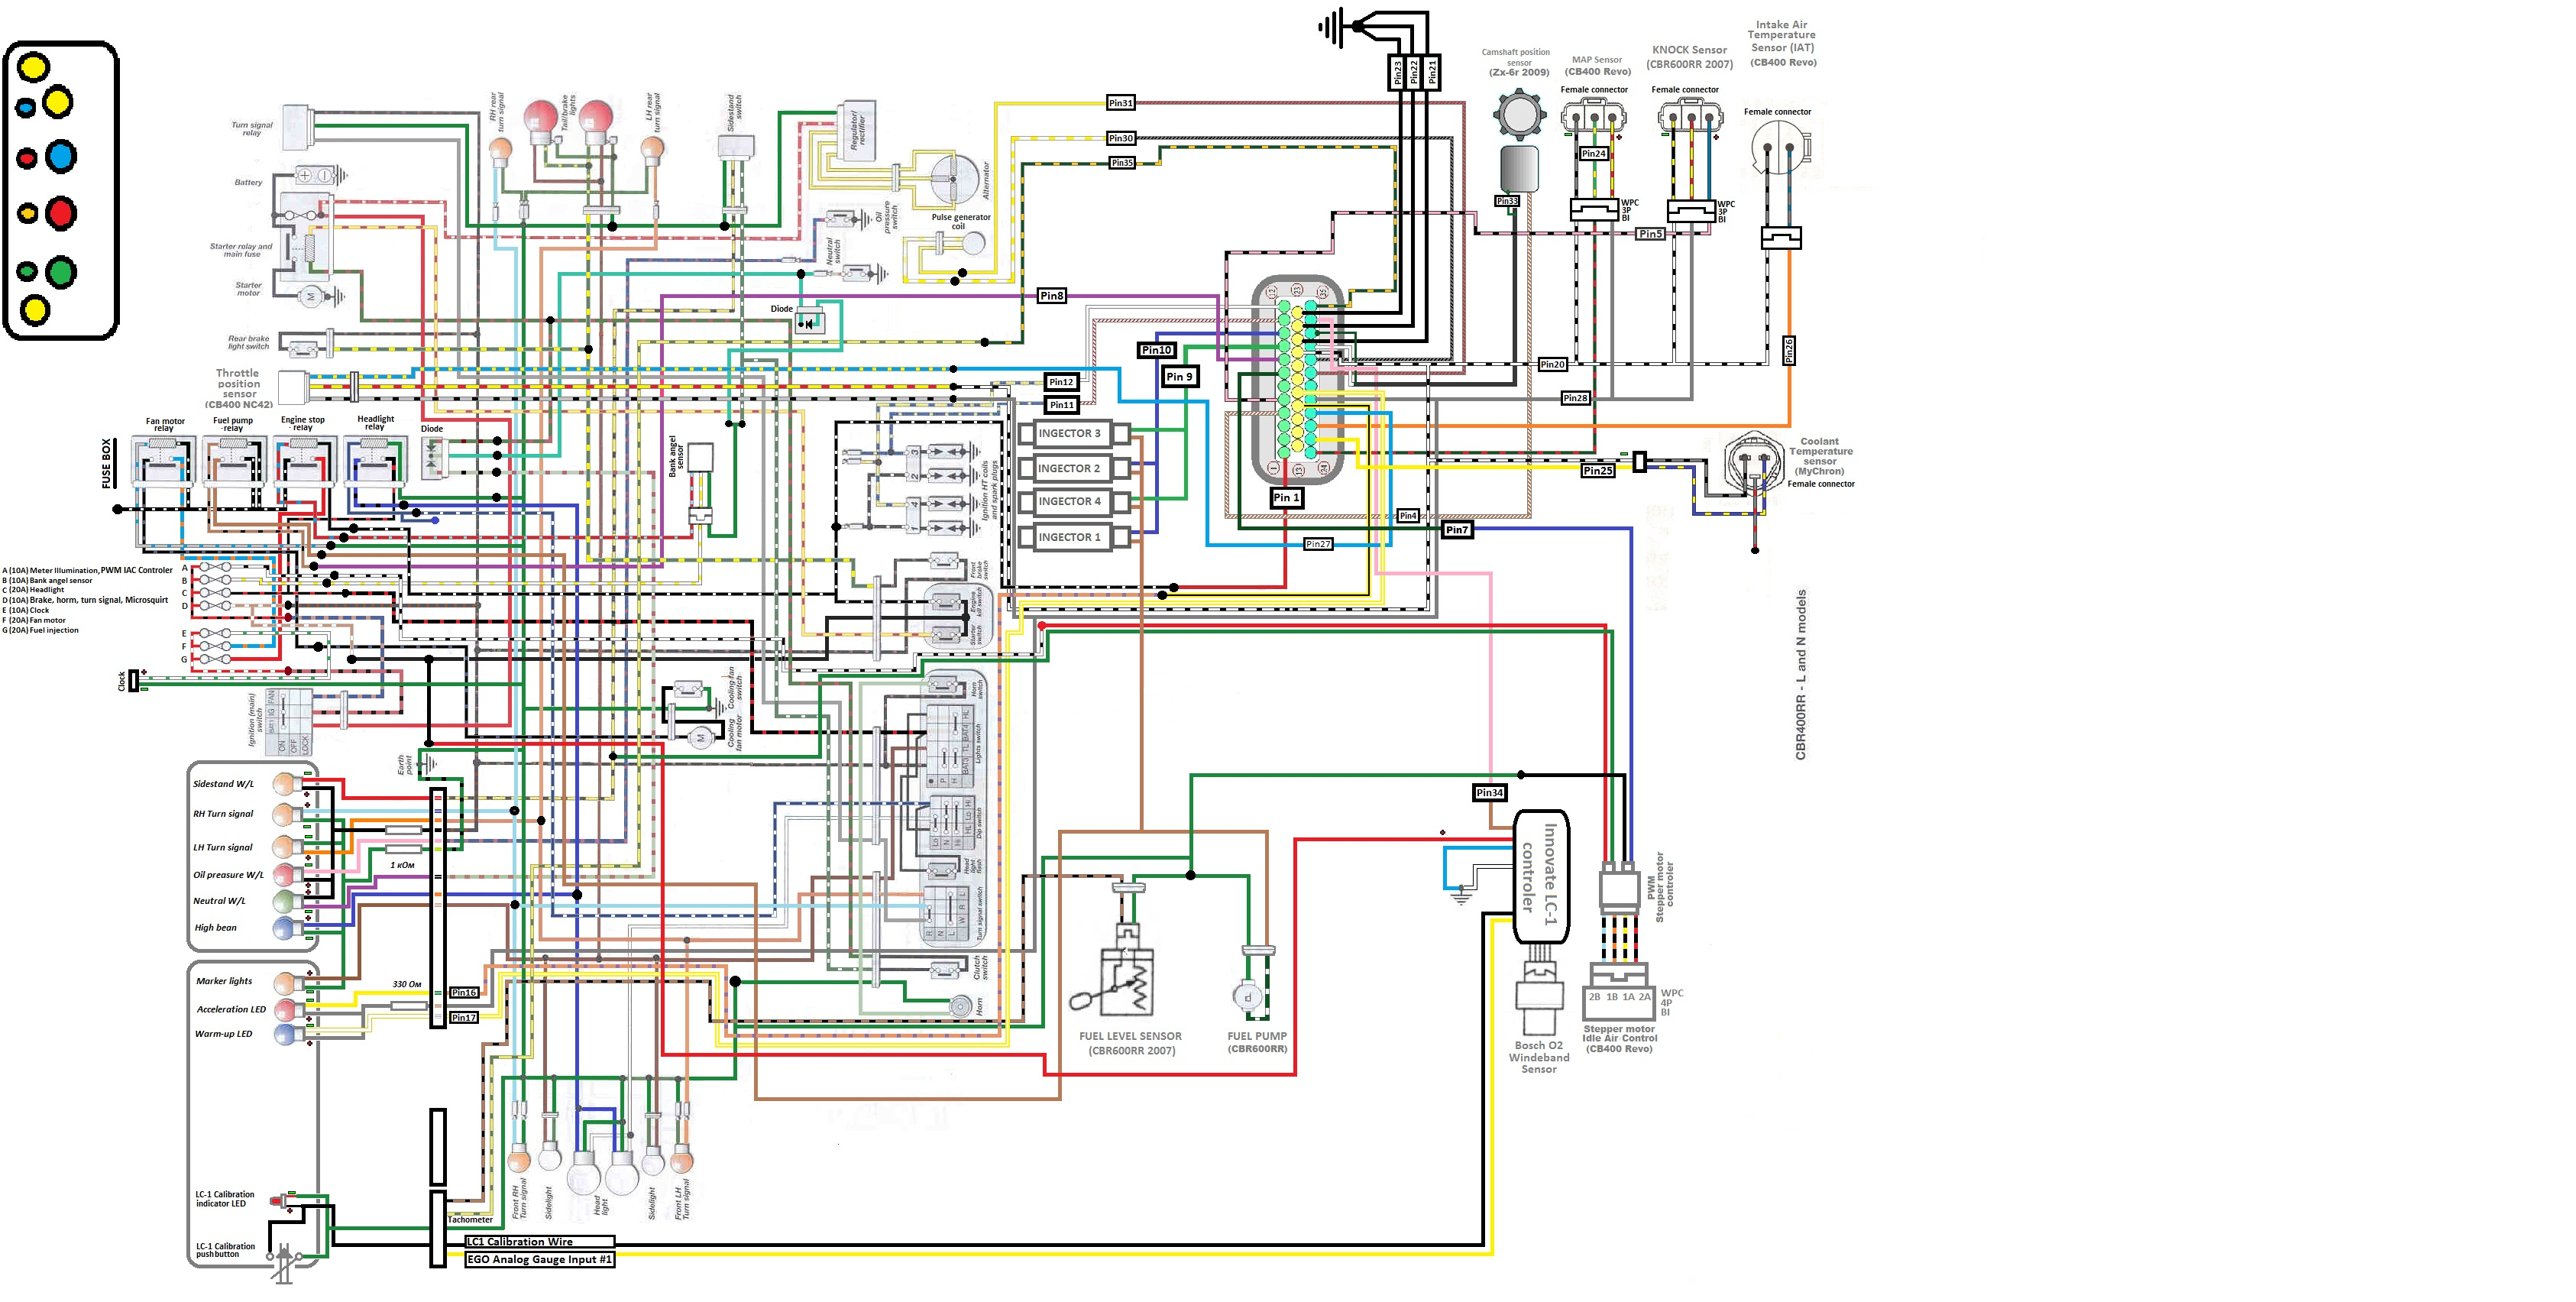 yamaha wire diagram 1989 xj600 enthusiast wiring diagrams \u2022 electronic circuit diagrams motorcycle wiring diagrams rh cycleterminal com 92 yamaha xj600 1996 yamaha xj600